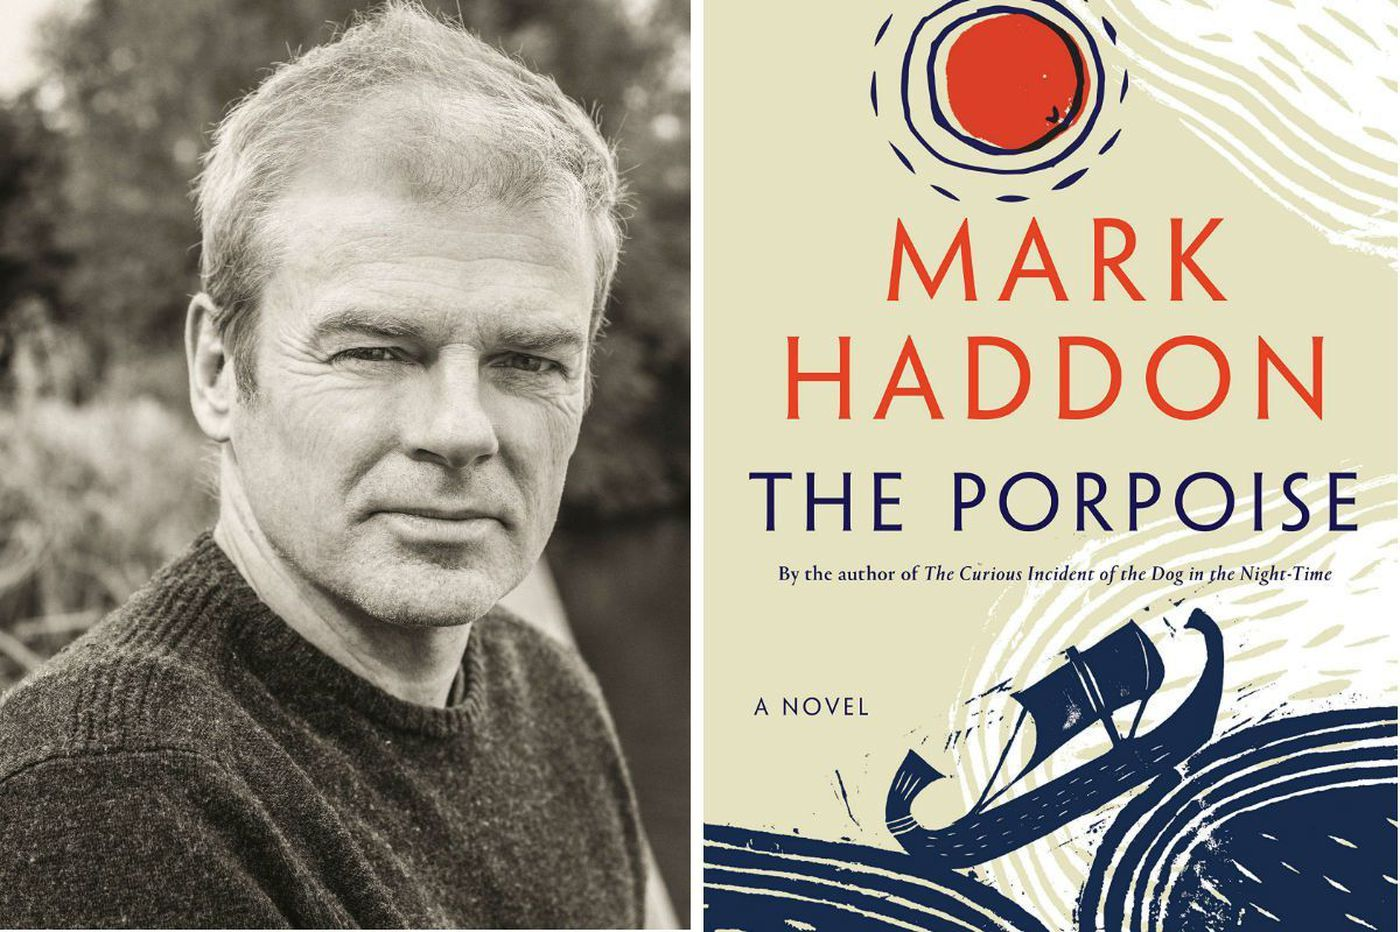 mark haddons the porpoise thrilling electrifying tale from the  mark haddons the porpoise thrilling electrifying tale from the author  of the curious incident of the dog